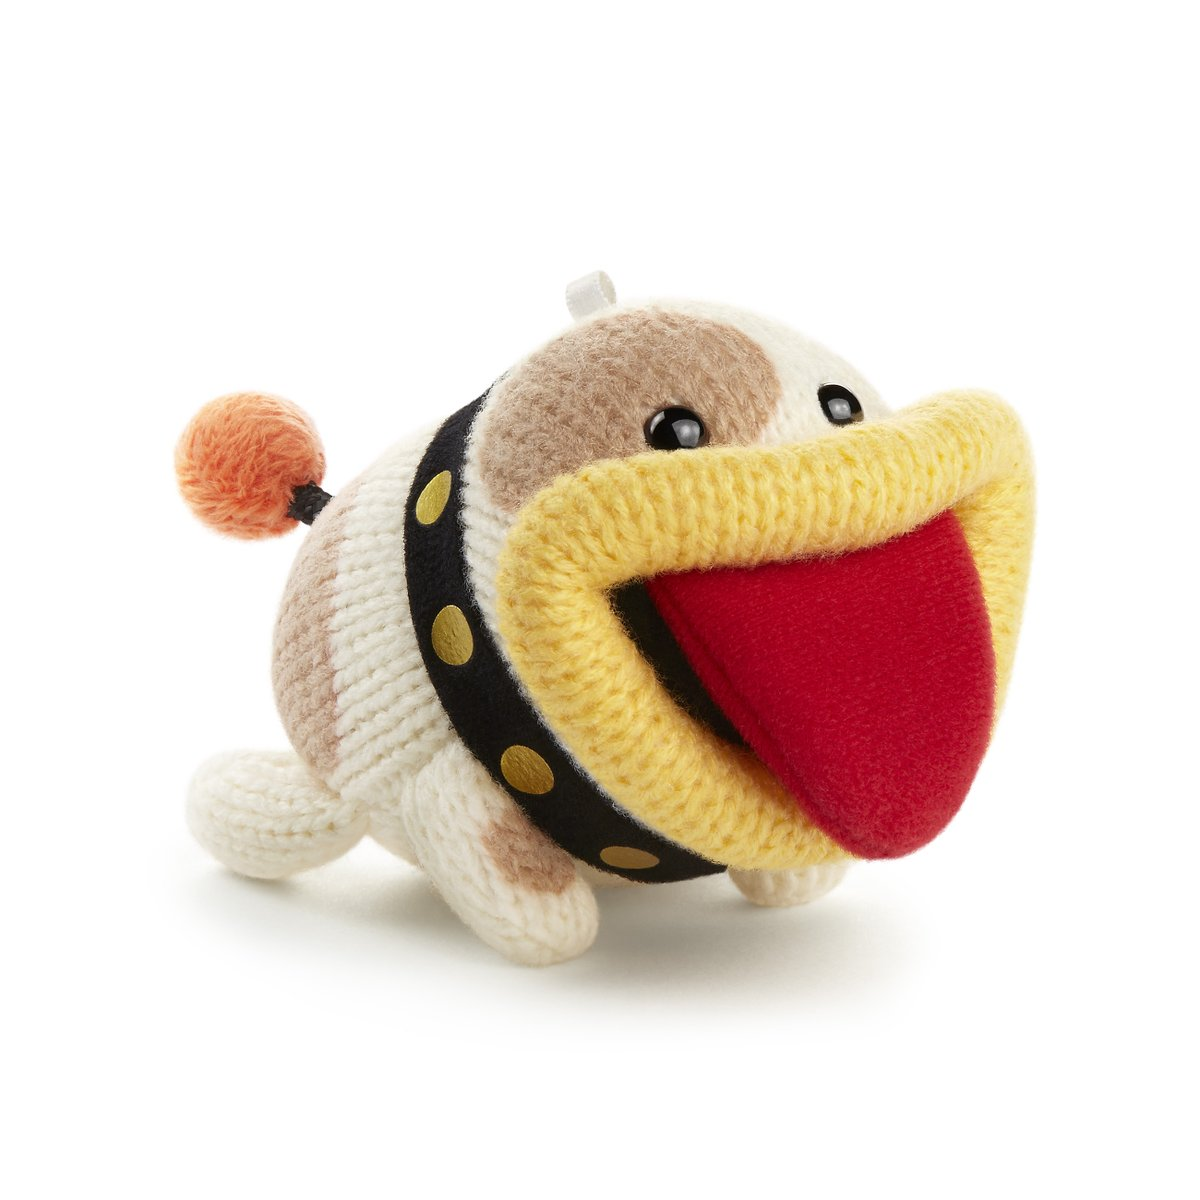 Poochy and Yoshi's Woolly World News